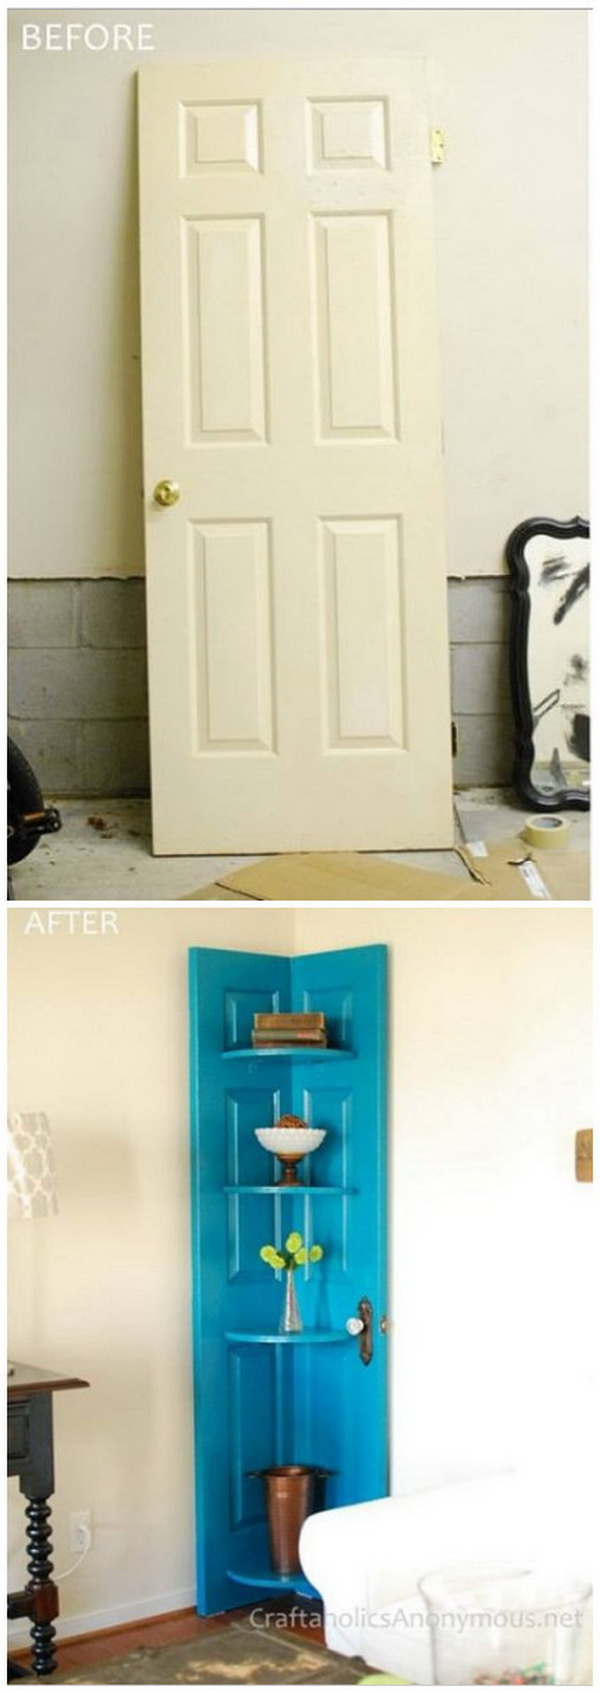 Funiture Makeovers: DIY Door Shelf Tutorial.